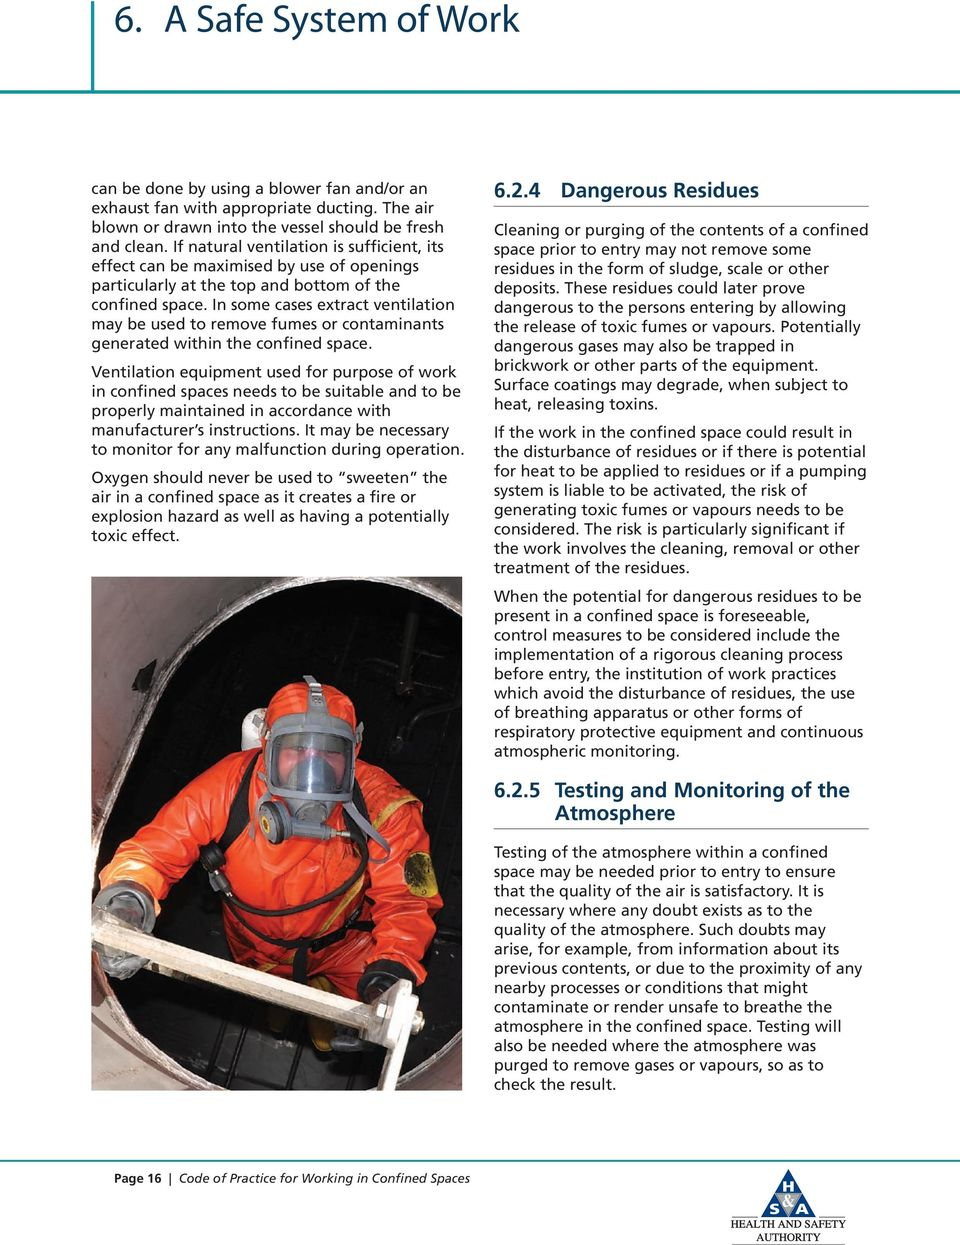 In some cases extract ventilation may be used to remove fumes or contaminants generated within the confined space.